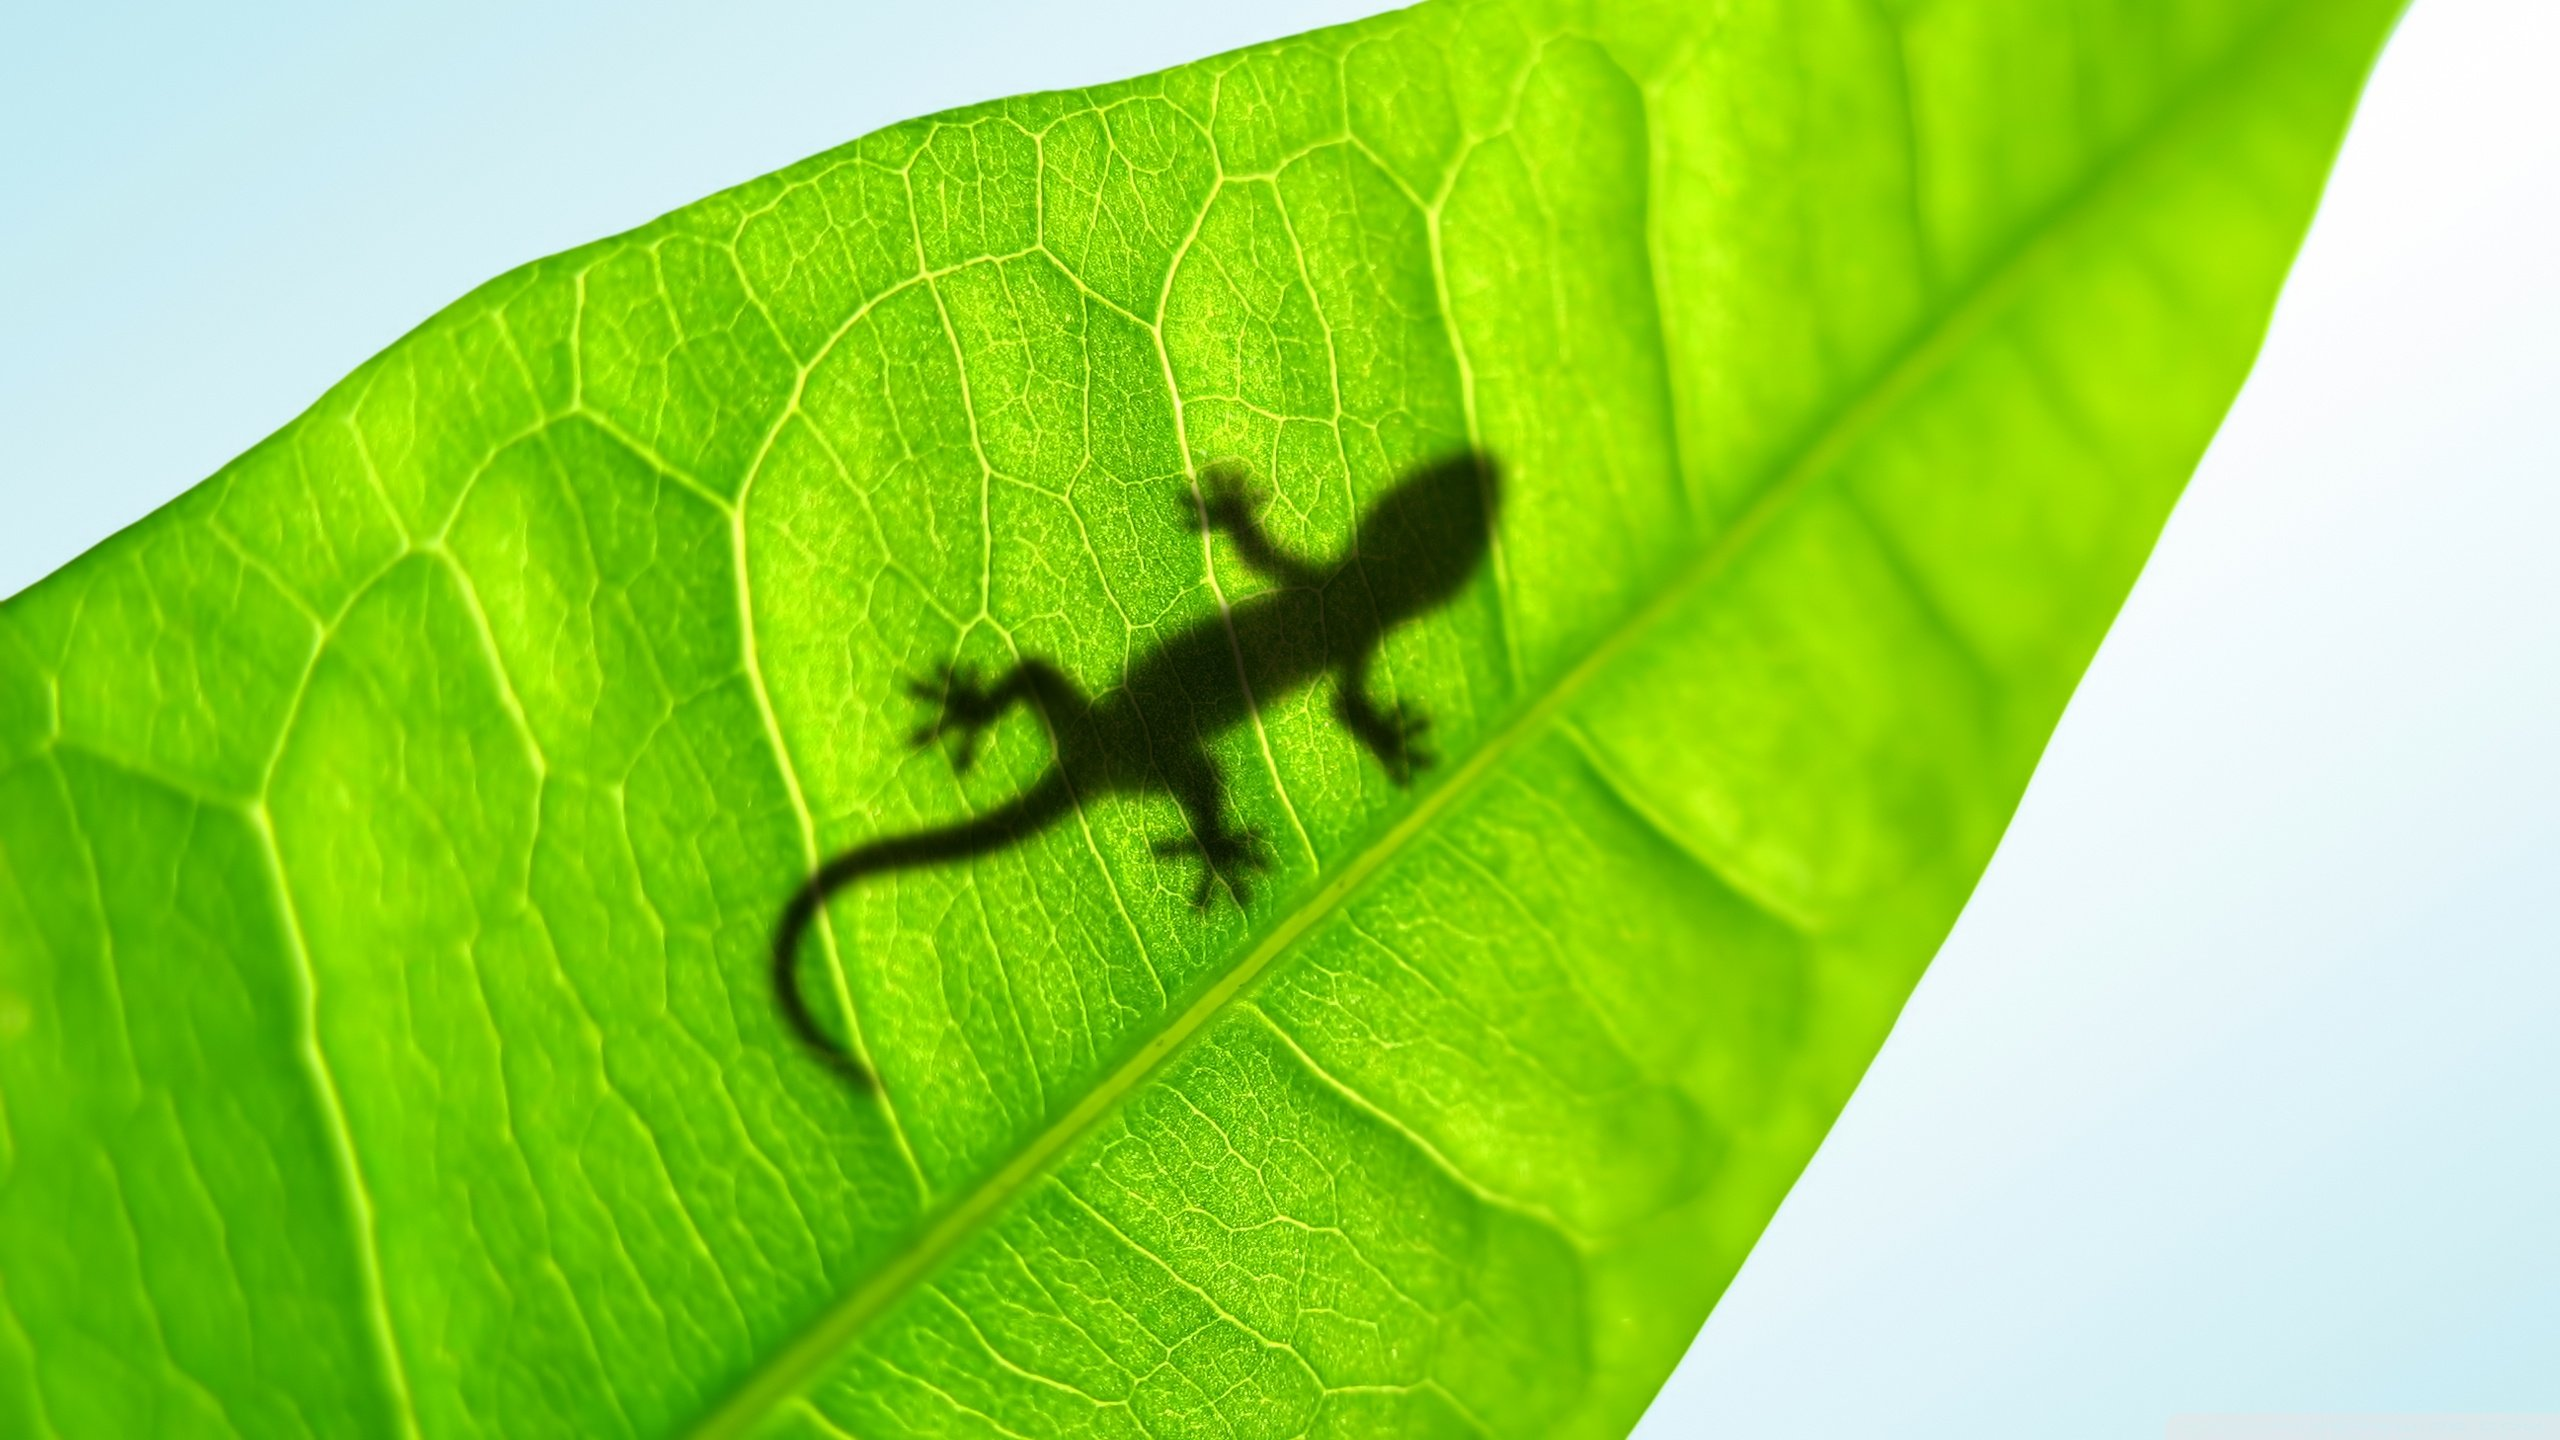 Free Gecko high quality wallpaper ID:114536 for hd 2560x1440 PC